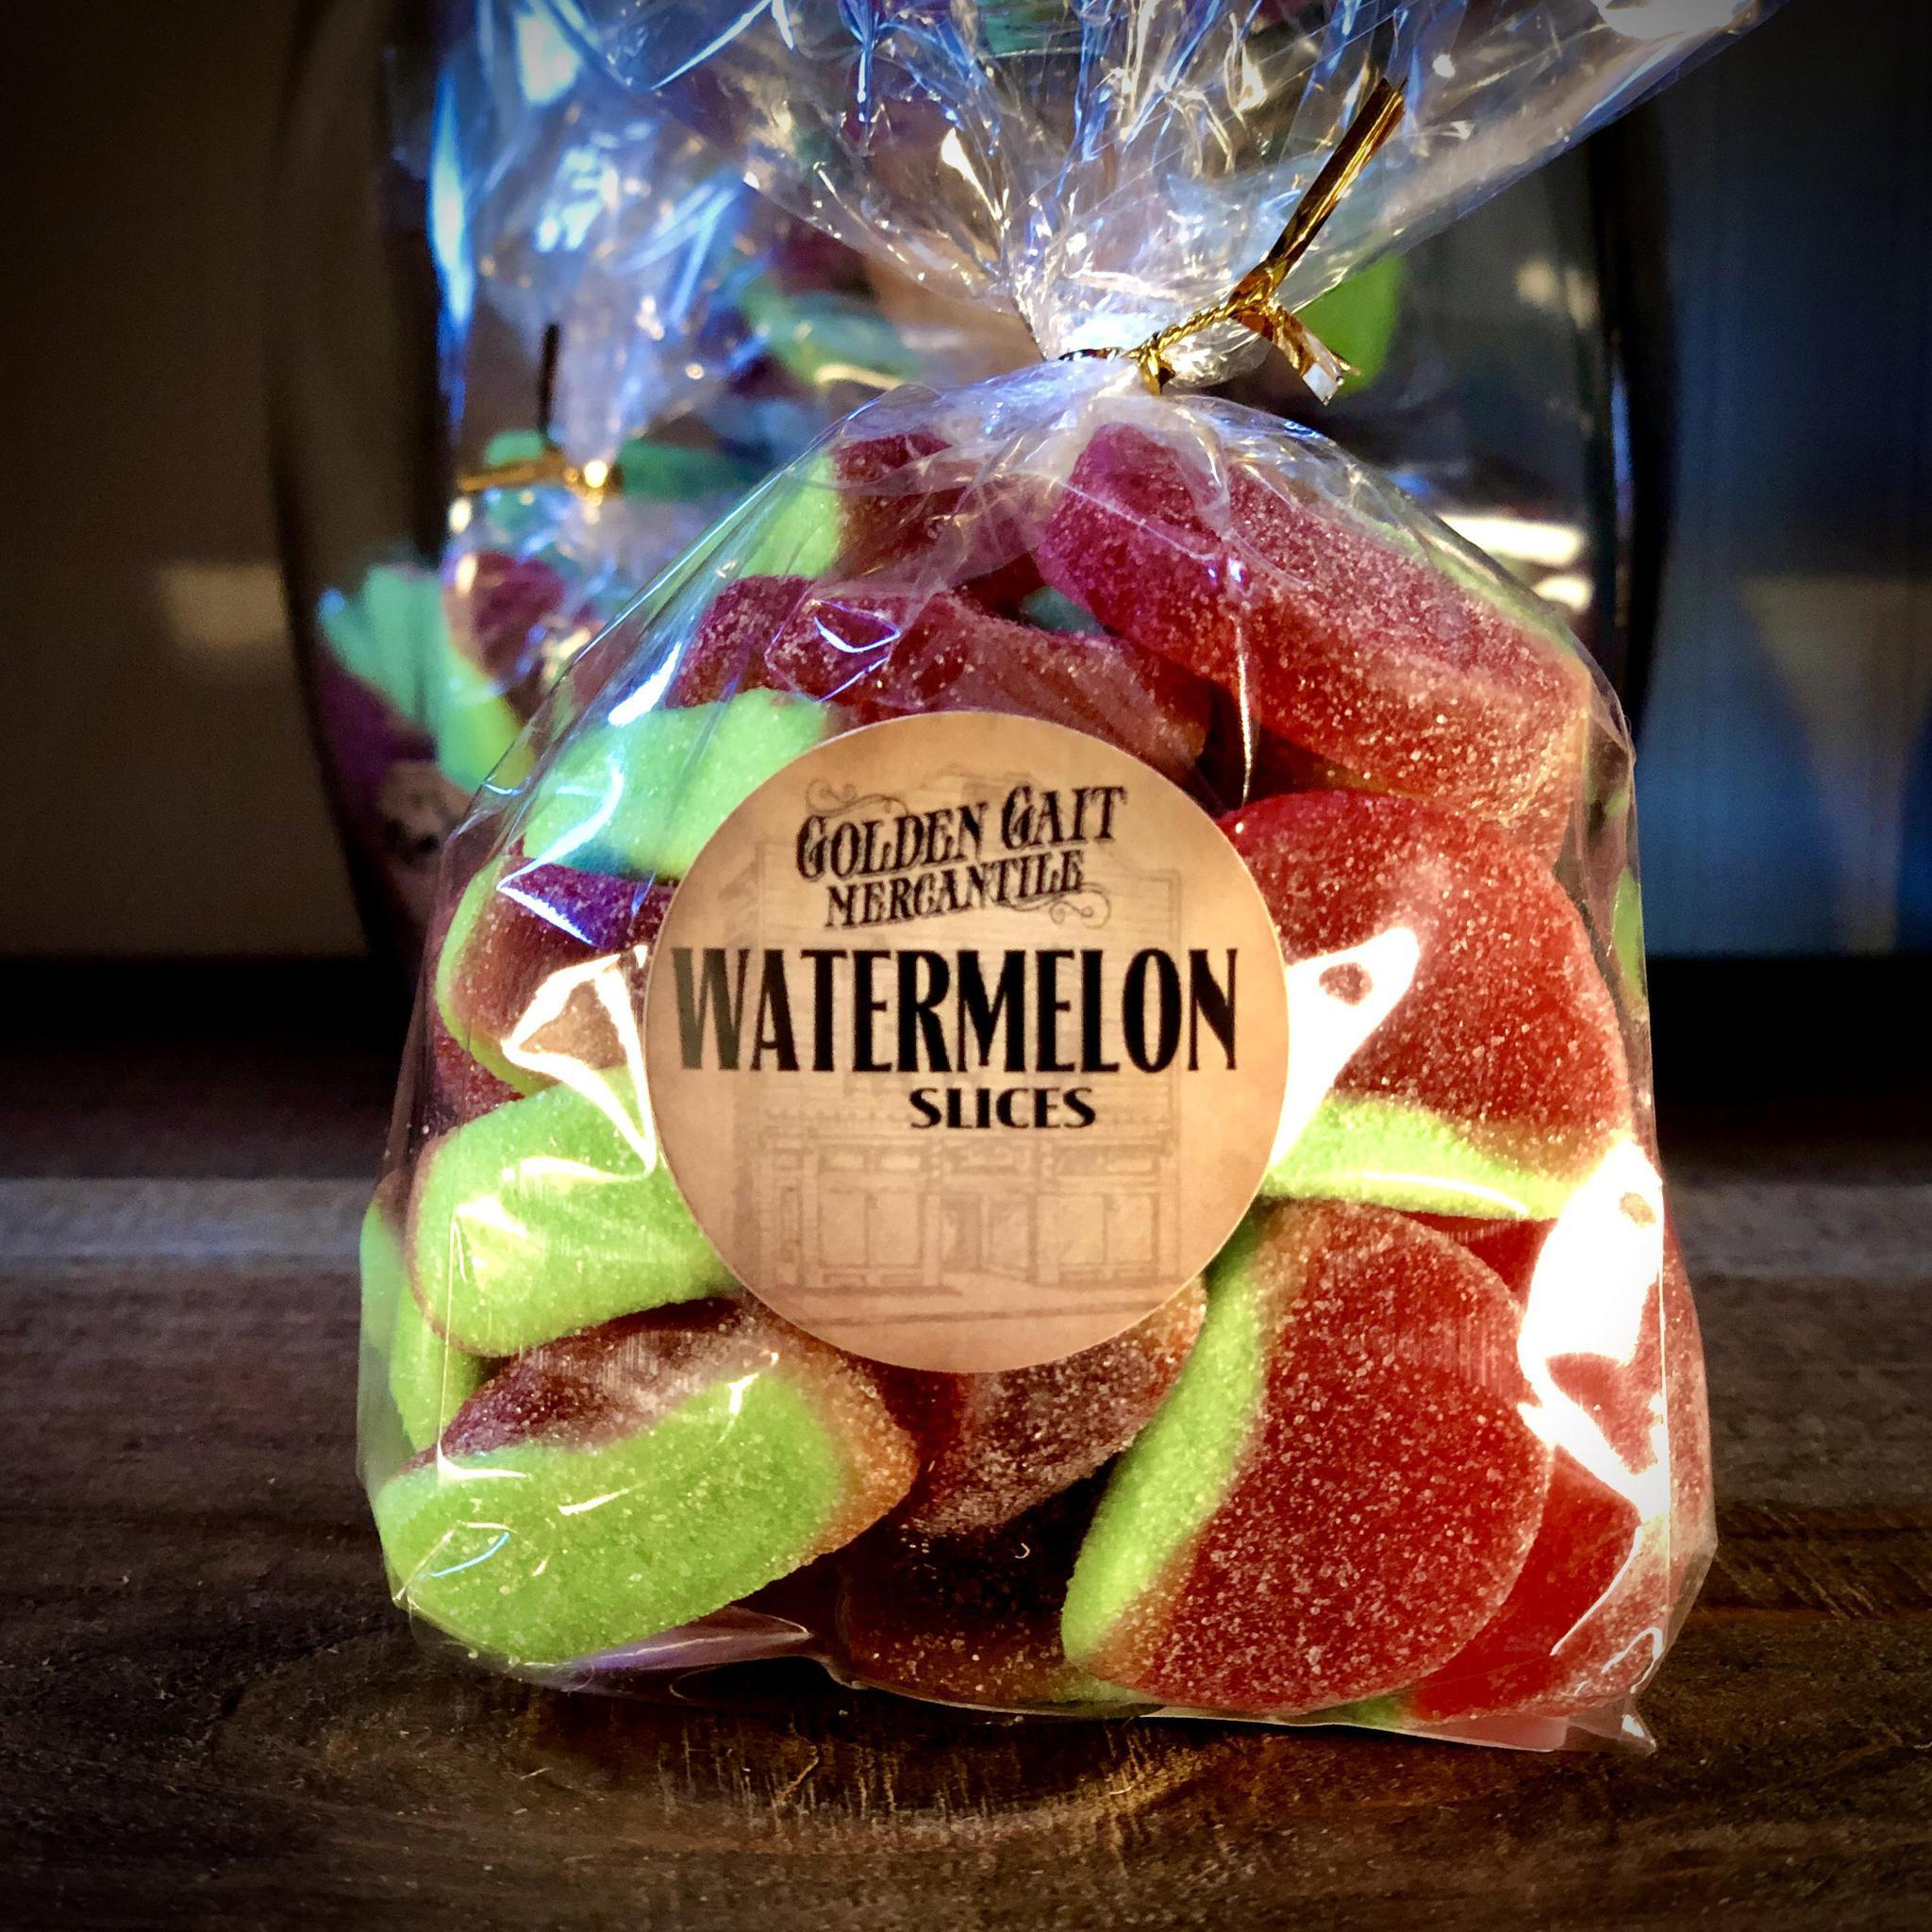 Watermelon Slices By The Golden Gait Mercantile